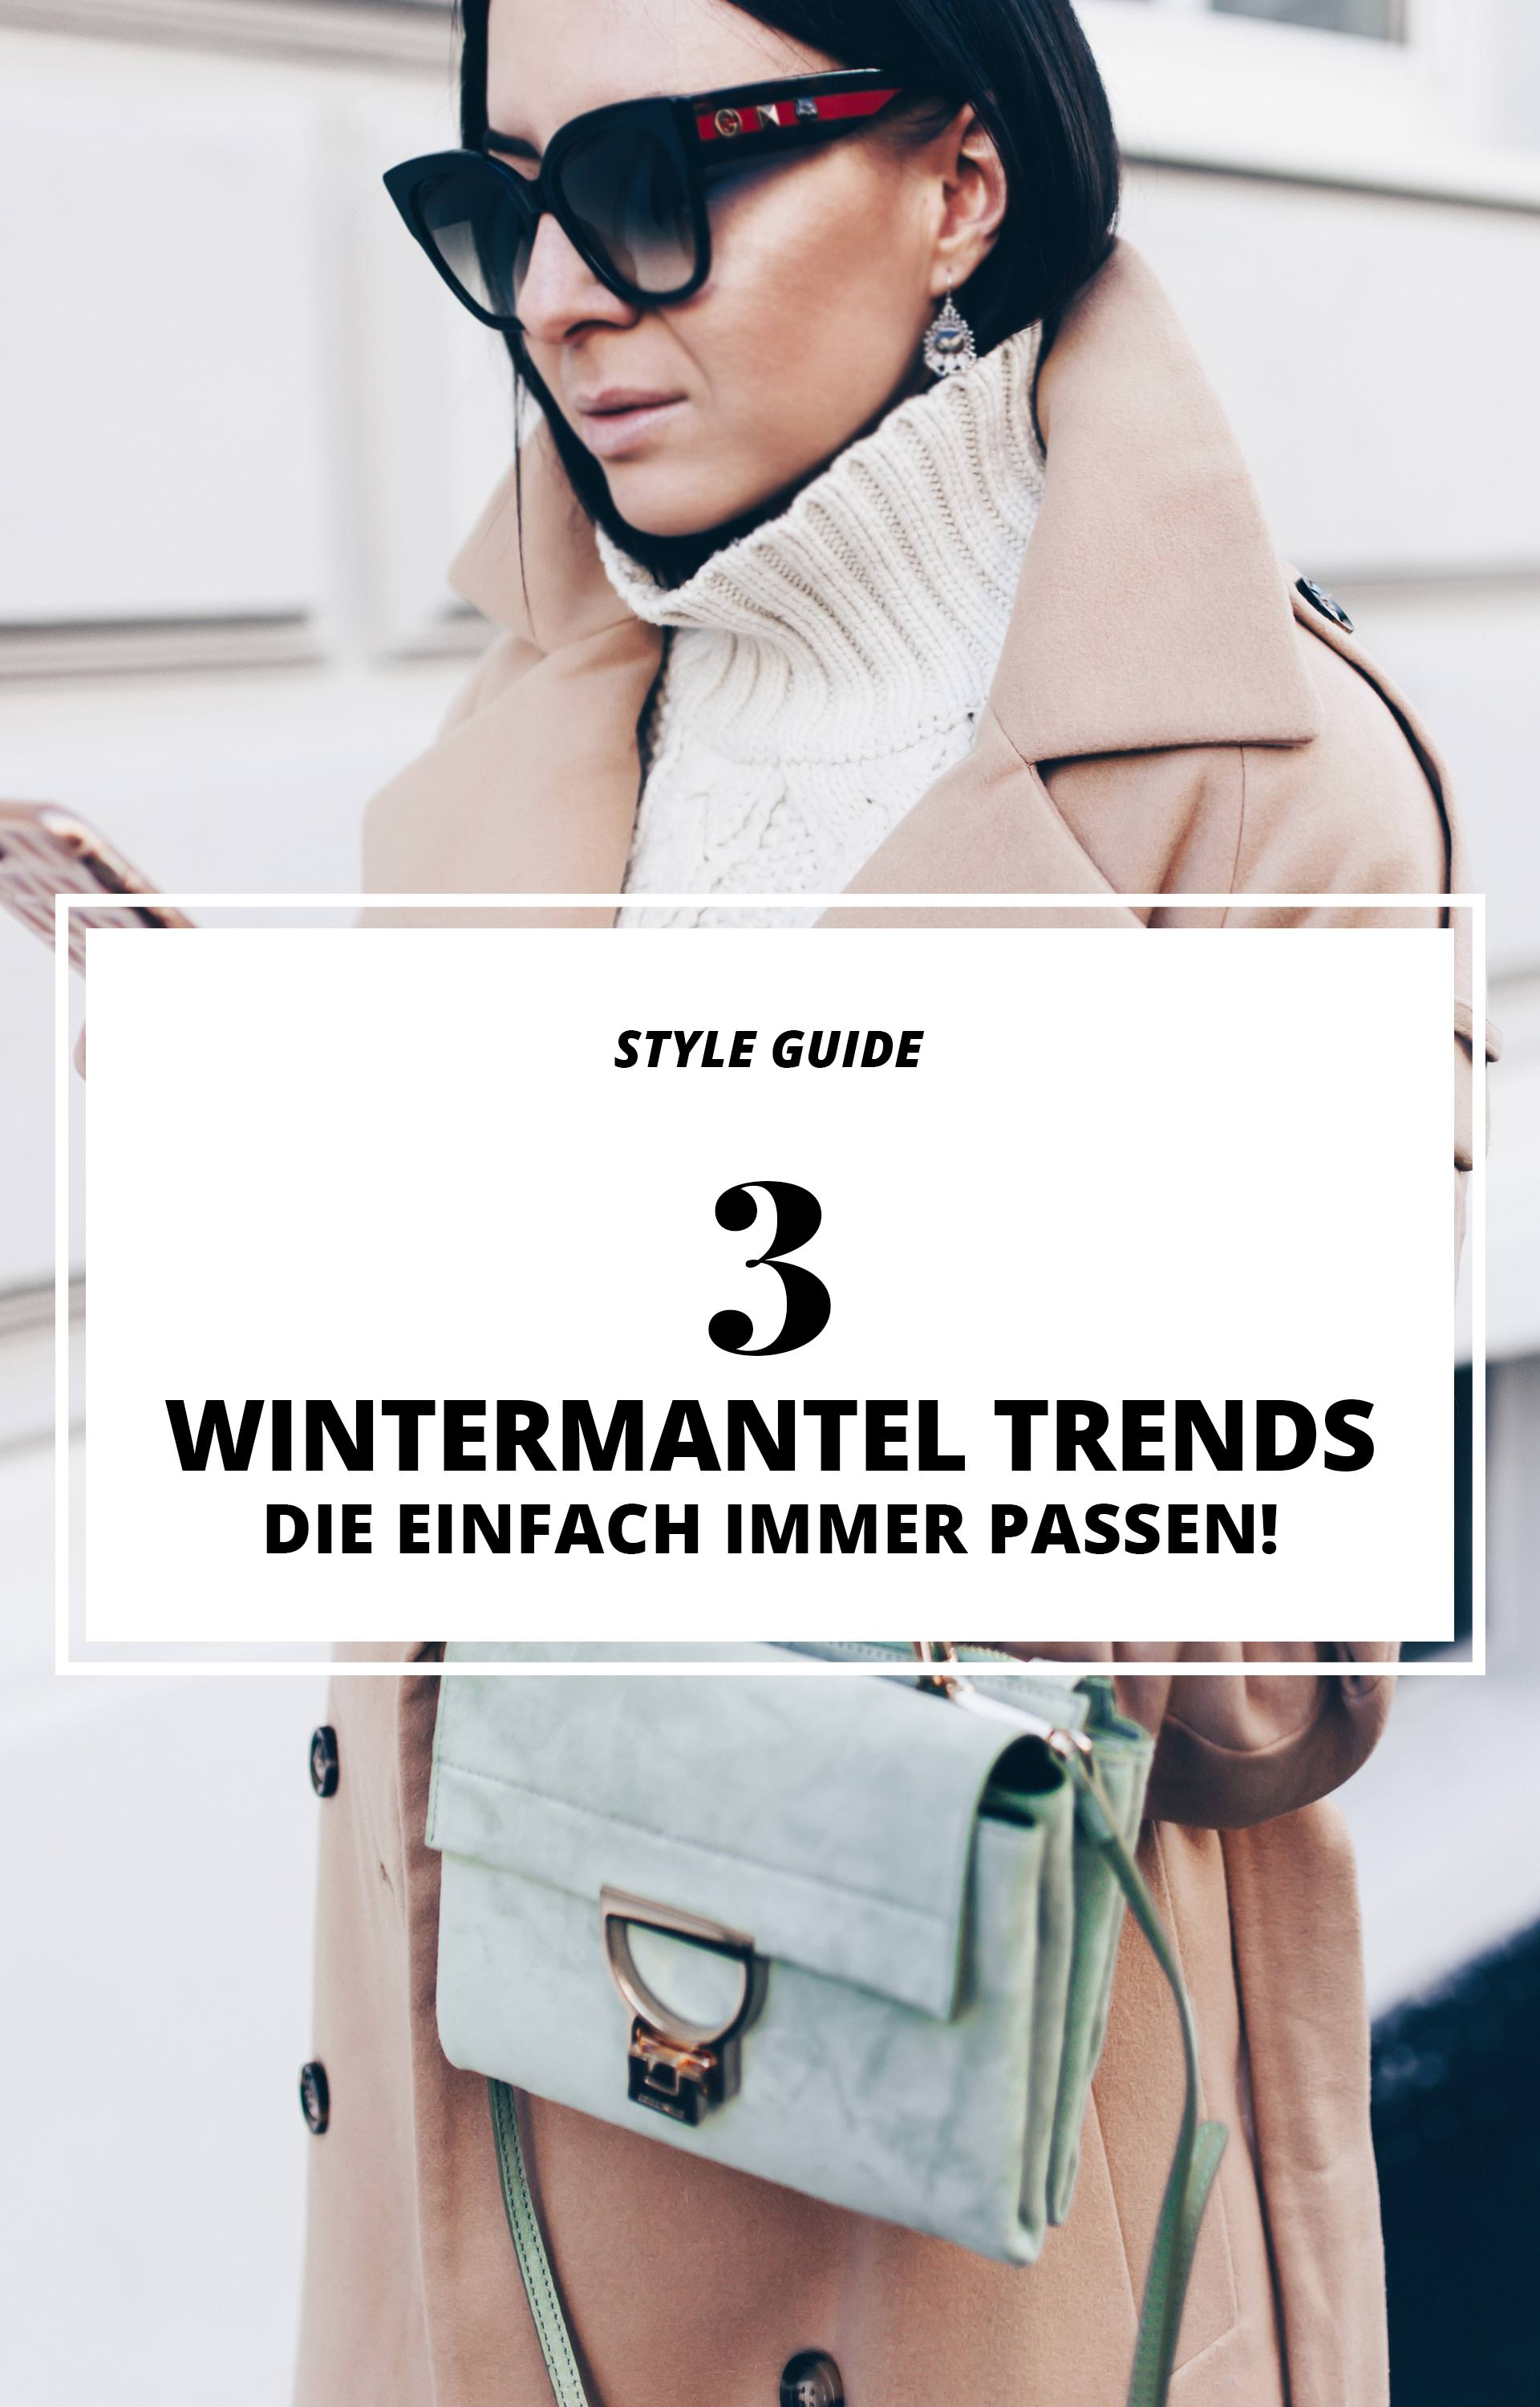 3 zeitloses Wintermantel Trends, die jedes Winter Outfit aufpeppen, Mantel Trends, Style Guide, Winter Must-have, Fashion Blogger, Modeblog, Outfit Idee, www.whoismocca.com